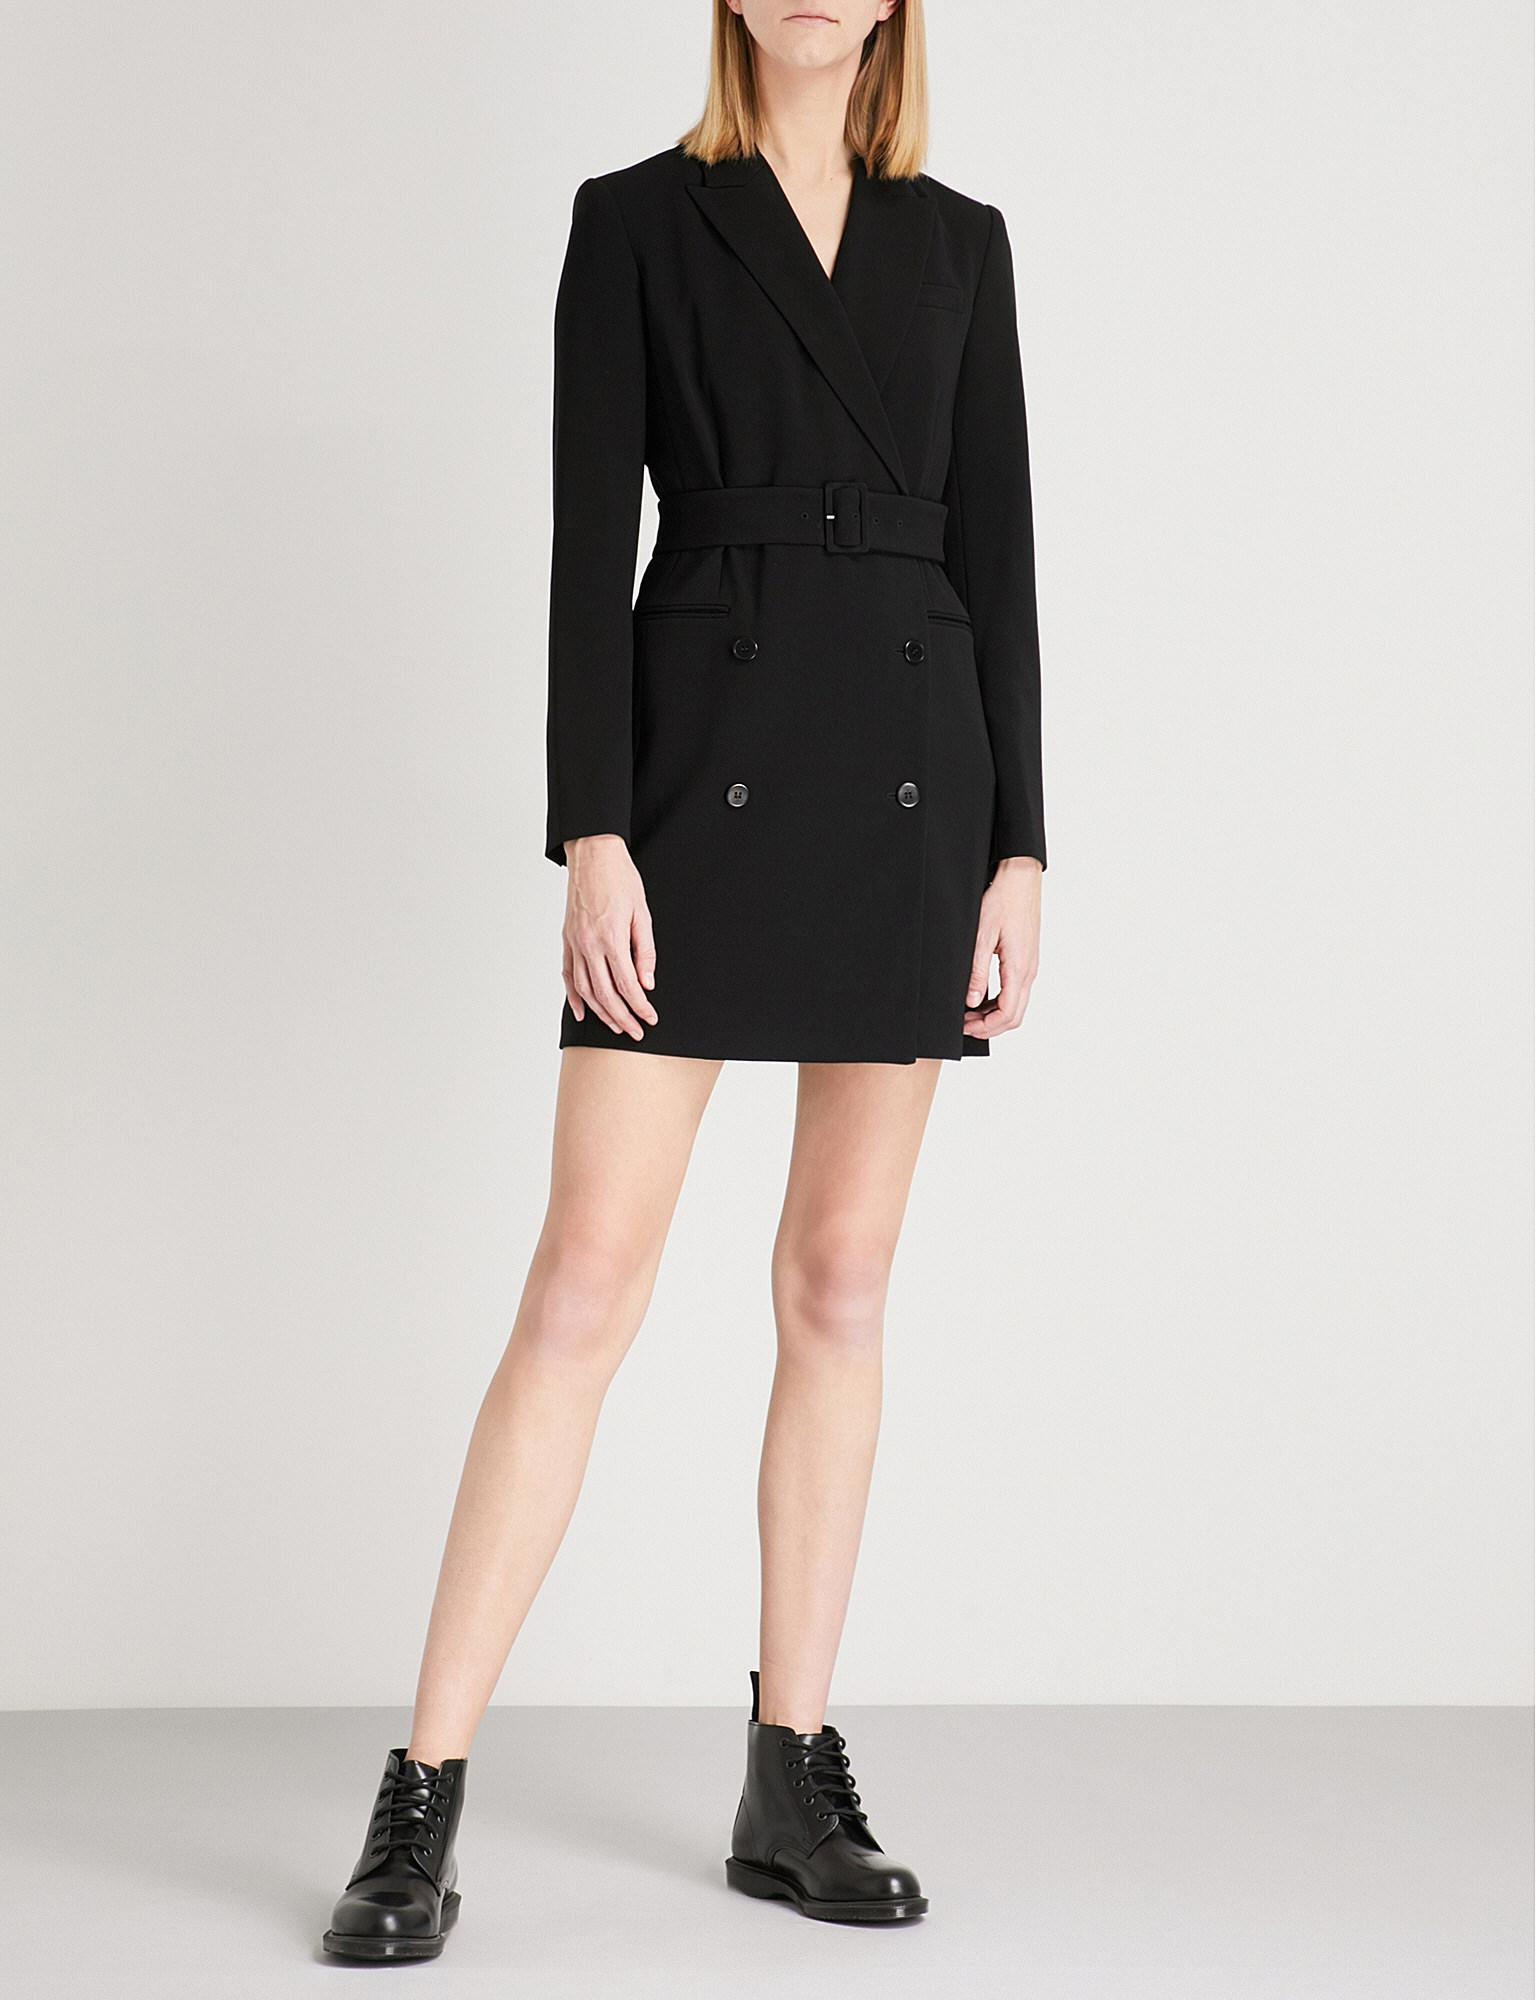 cb7d74989fb Theory Double-breasted Crepe Blazer Dress in Black - Lyst